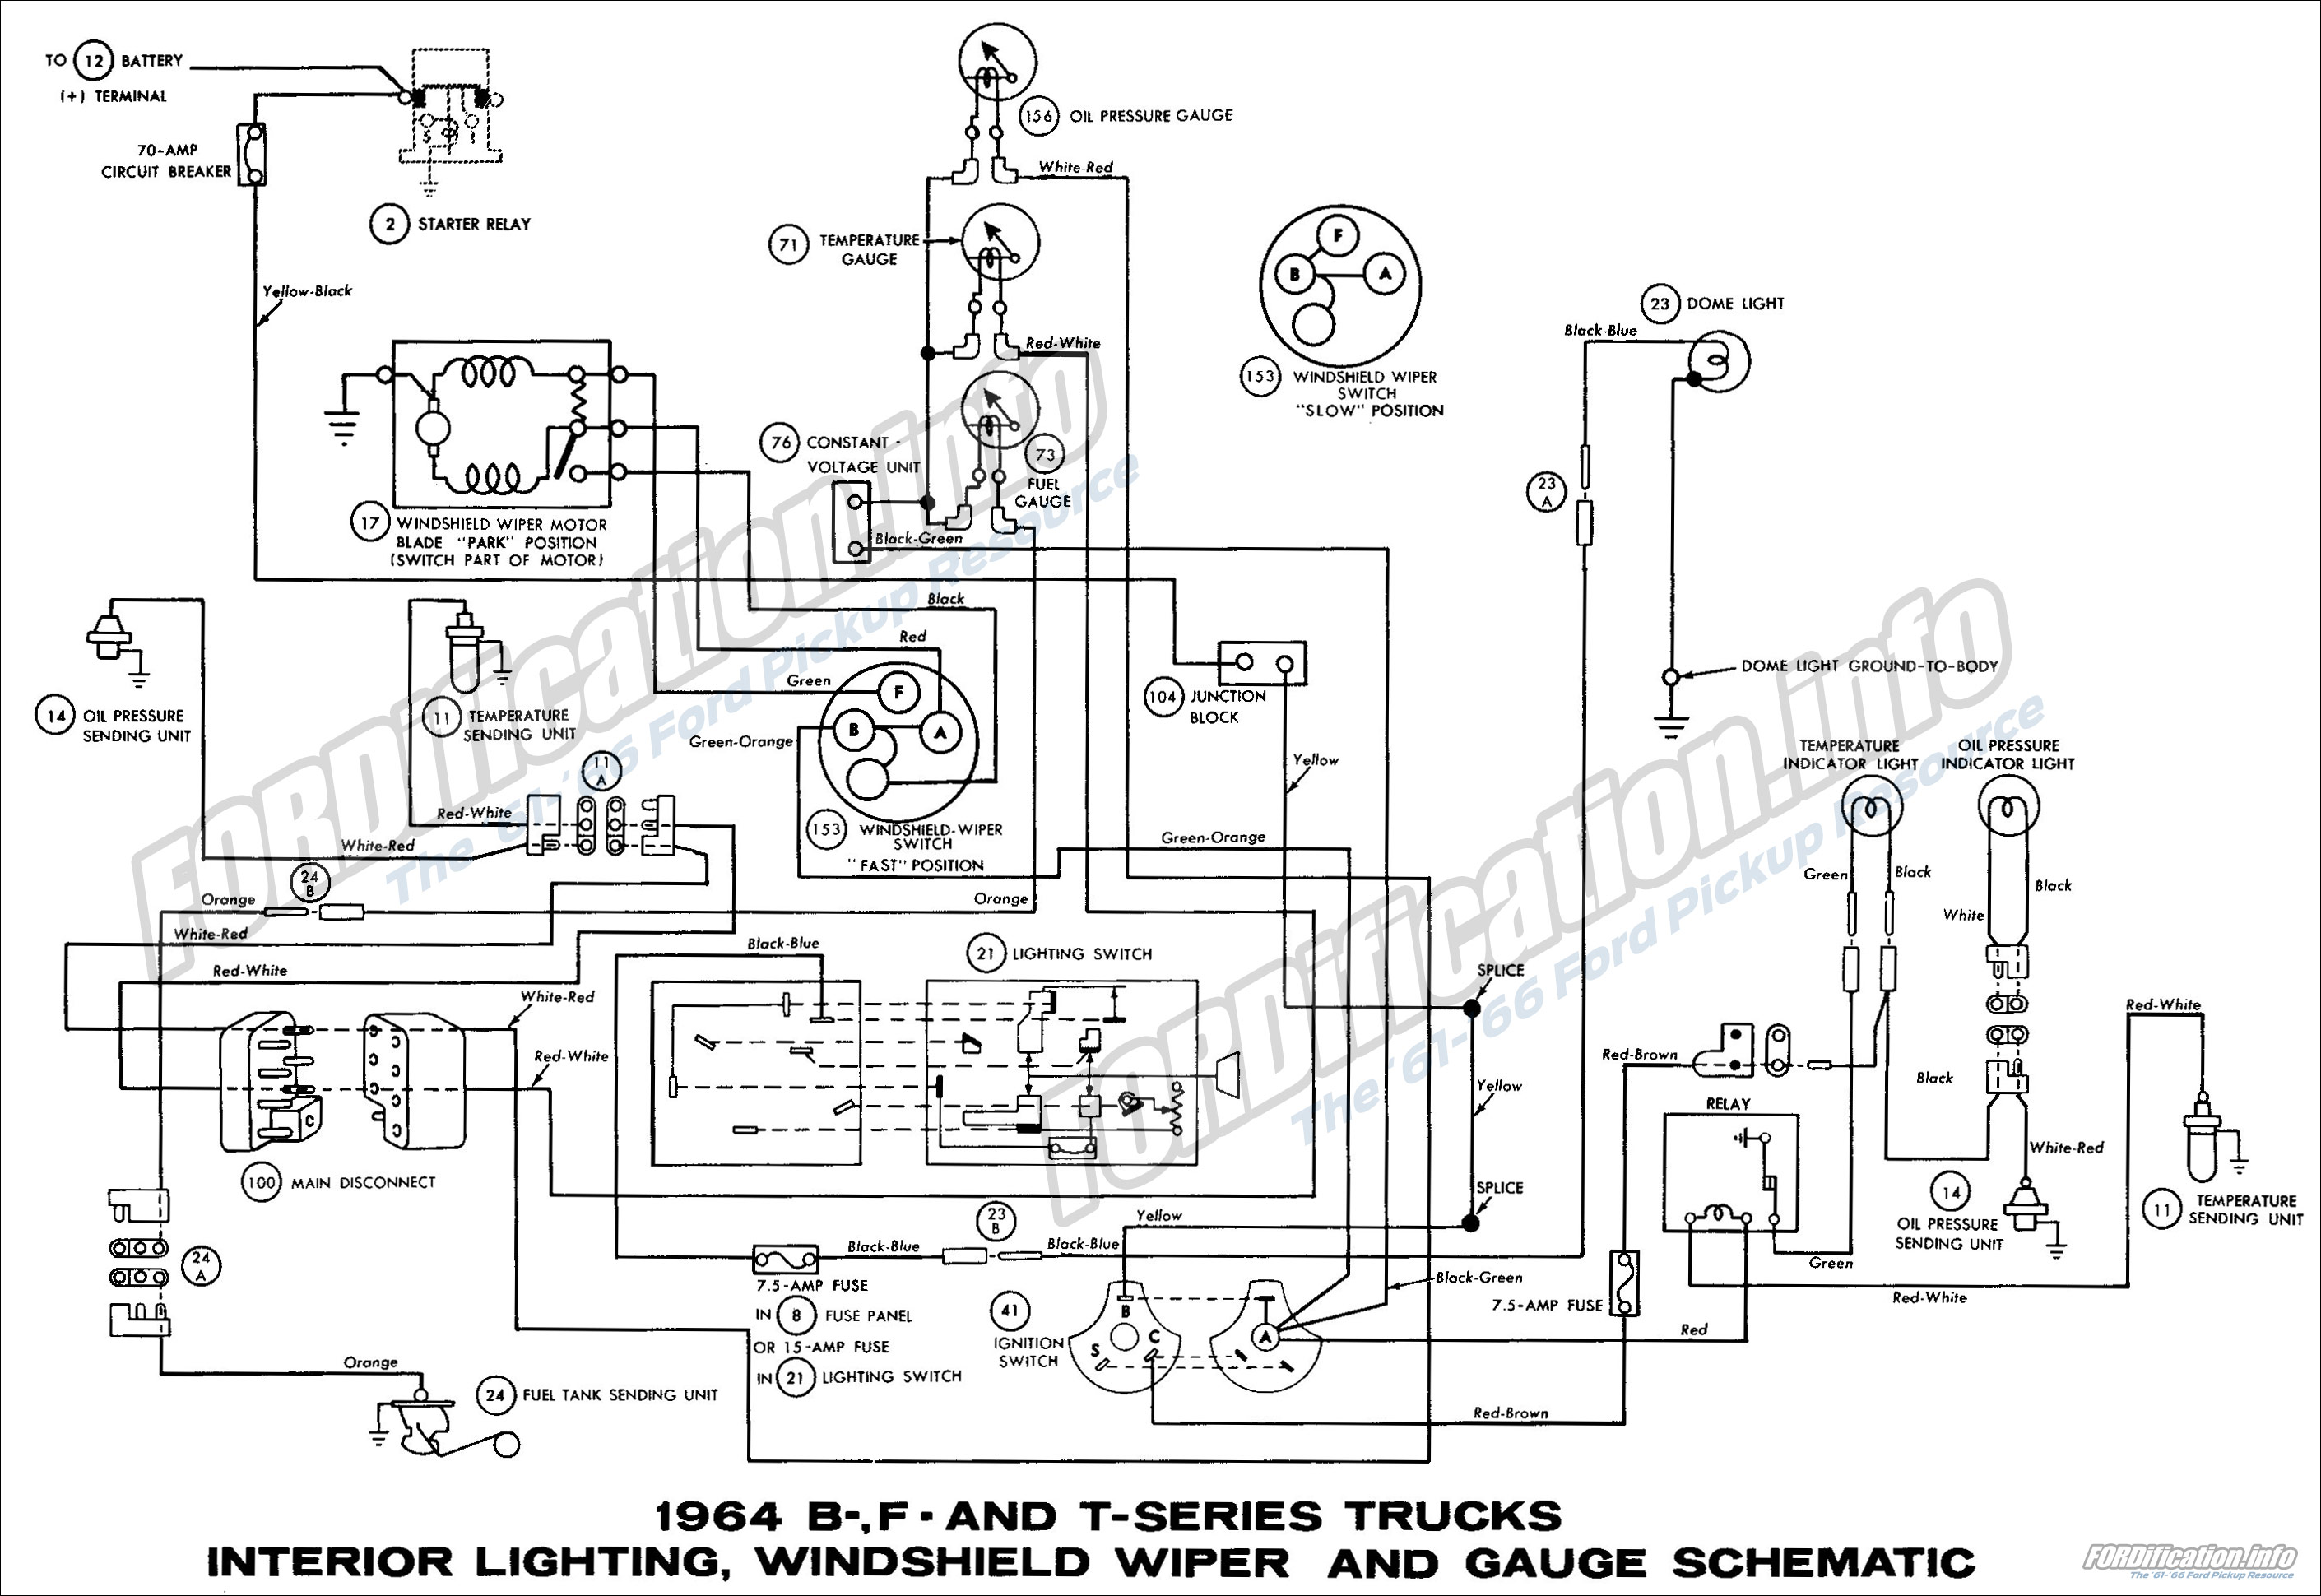 1964 ford truck wiring diagrams fordification info the 61 66 rh fordification info 1964 f100 turn signal wiring diagram 1964 ford f100 alternator wiring diagram